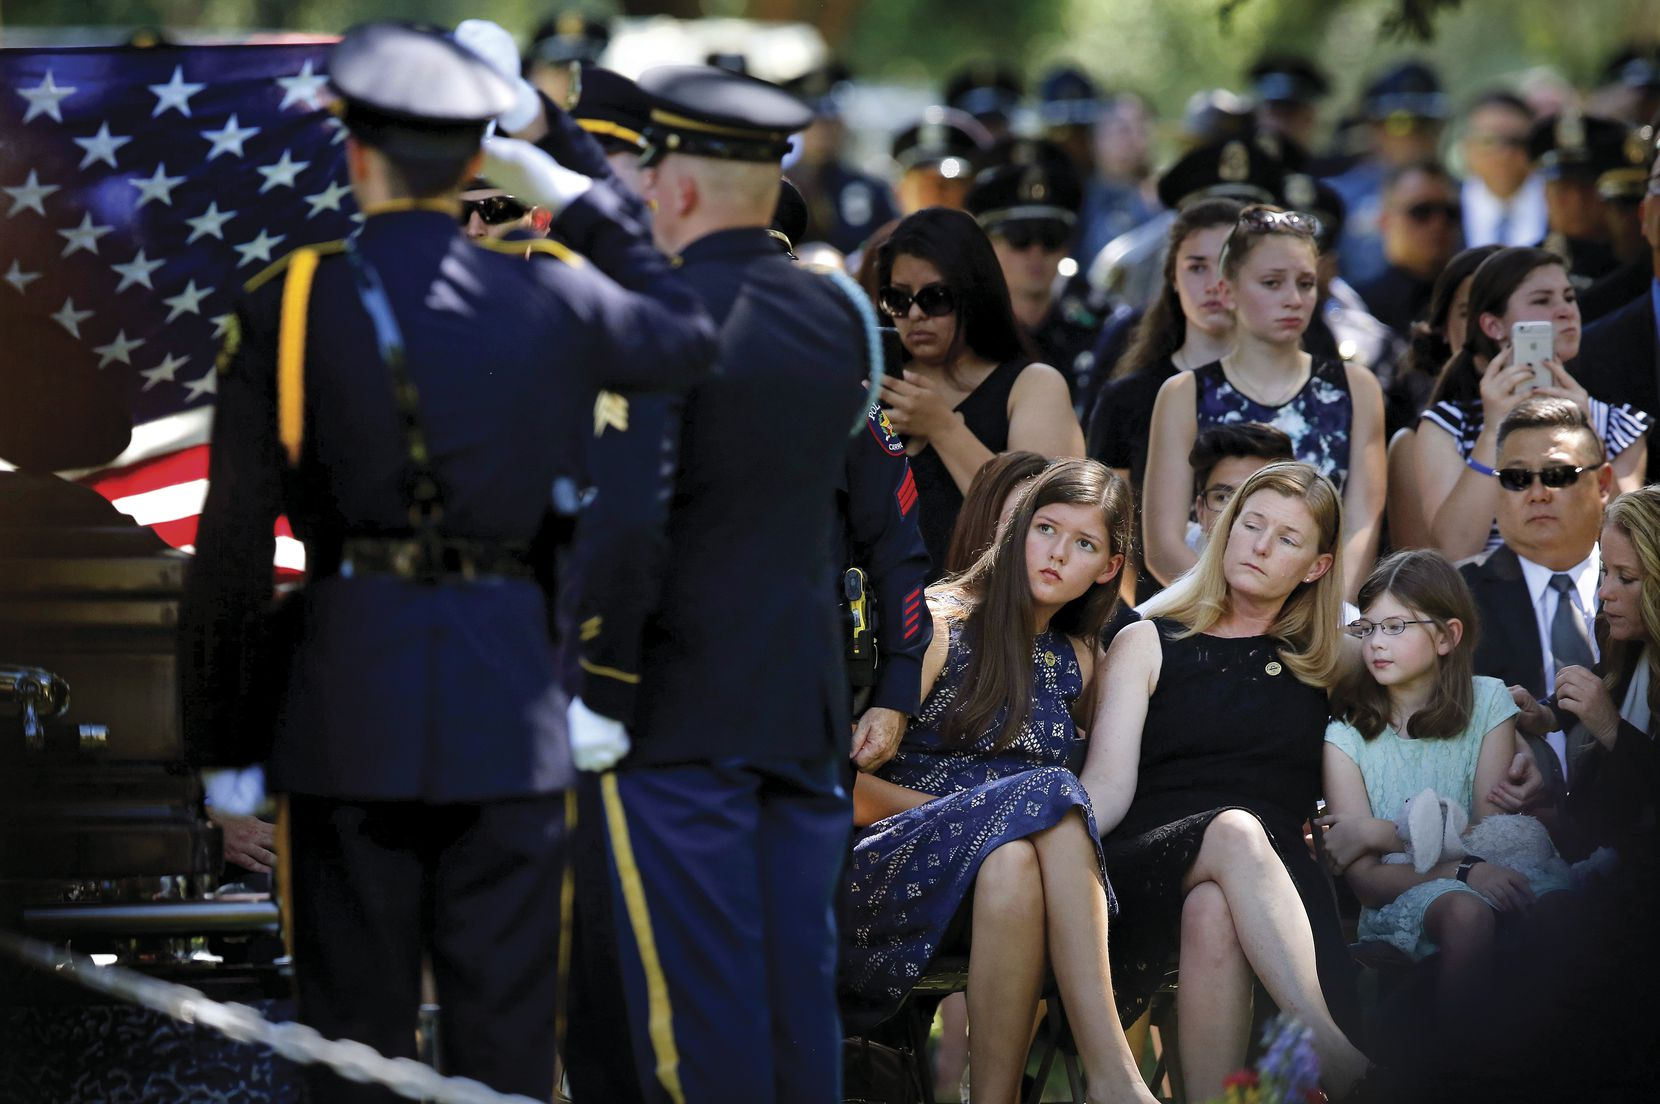 Heidi Smith and her daughters Victoria and Caroline were graveside as they laid her husband, Dallas police Sgt. Michael Smith, to rest at the Restland Funeral Home and Cemetery in Dallas on July 14. Smith was gunned down by Micah Johnson in the July 7 attack.